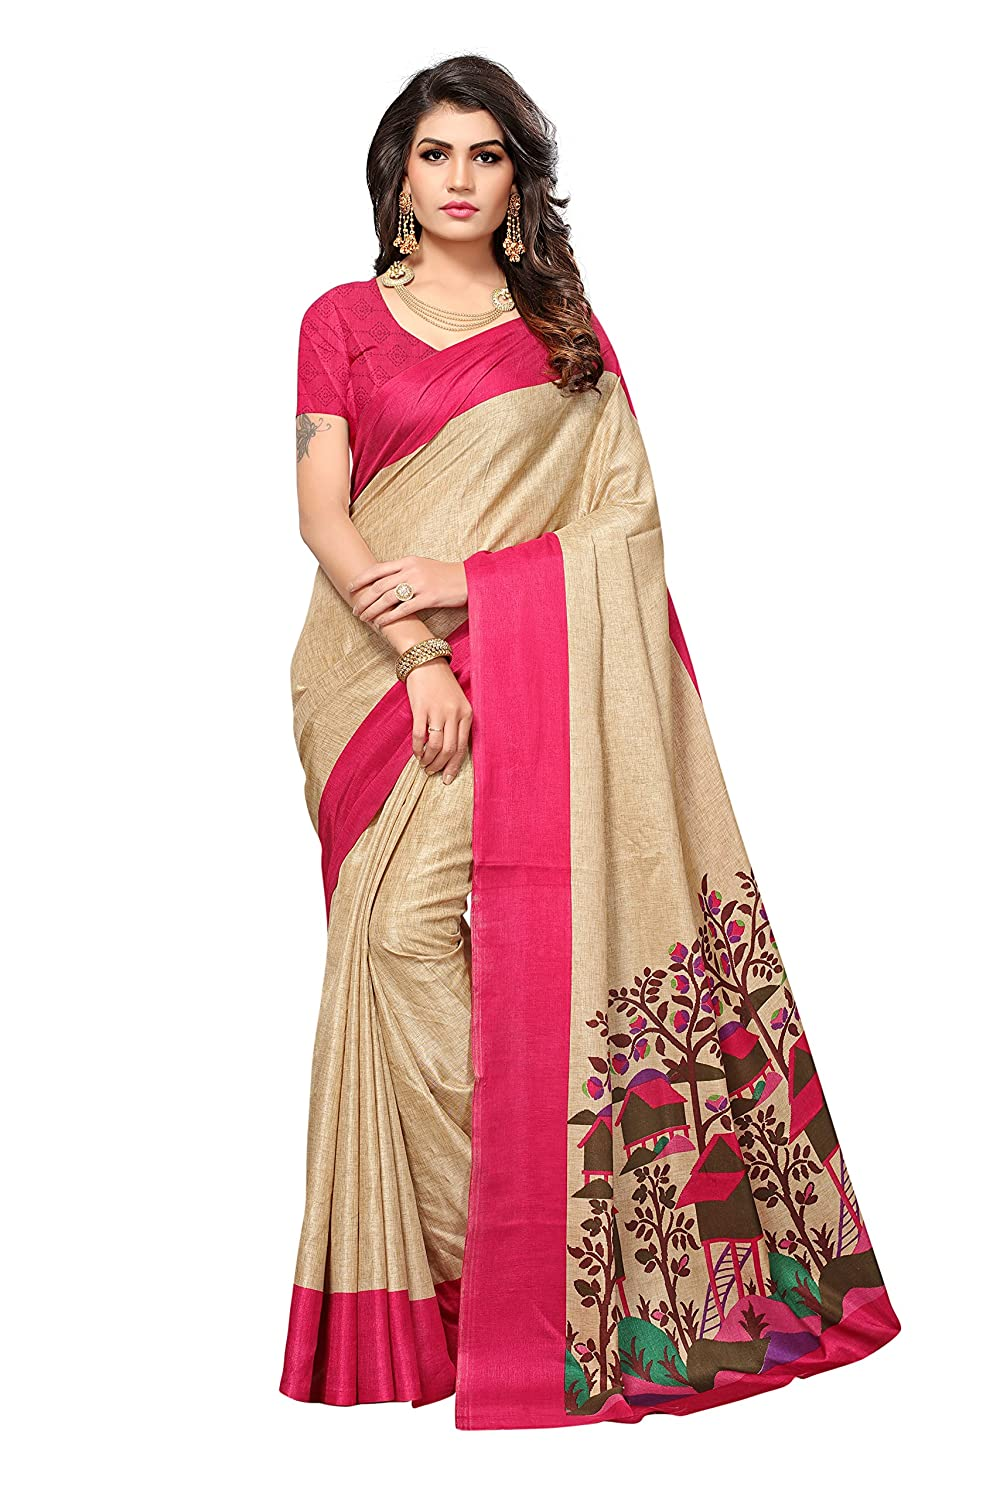 Shonaya Womens Pink & Beige Colour Manipuri Silk Printed Saree RTMNP-1010